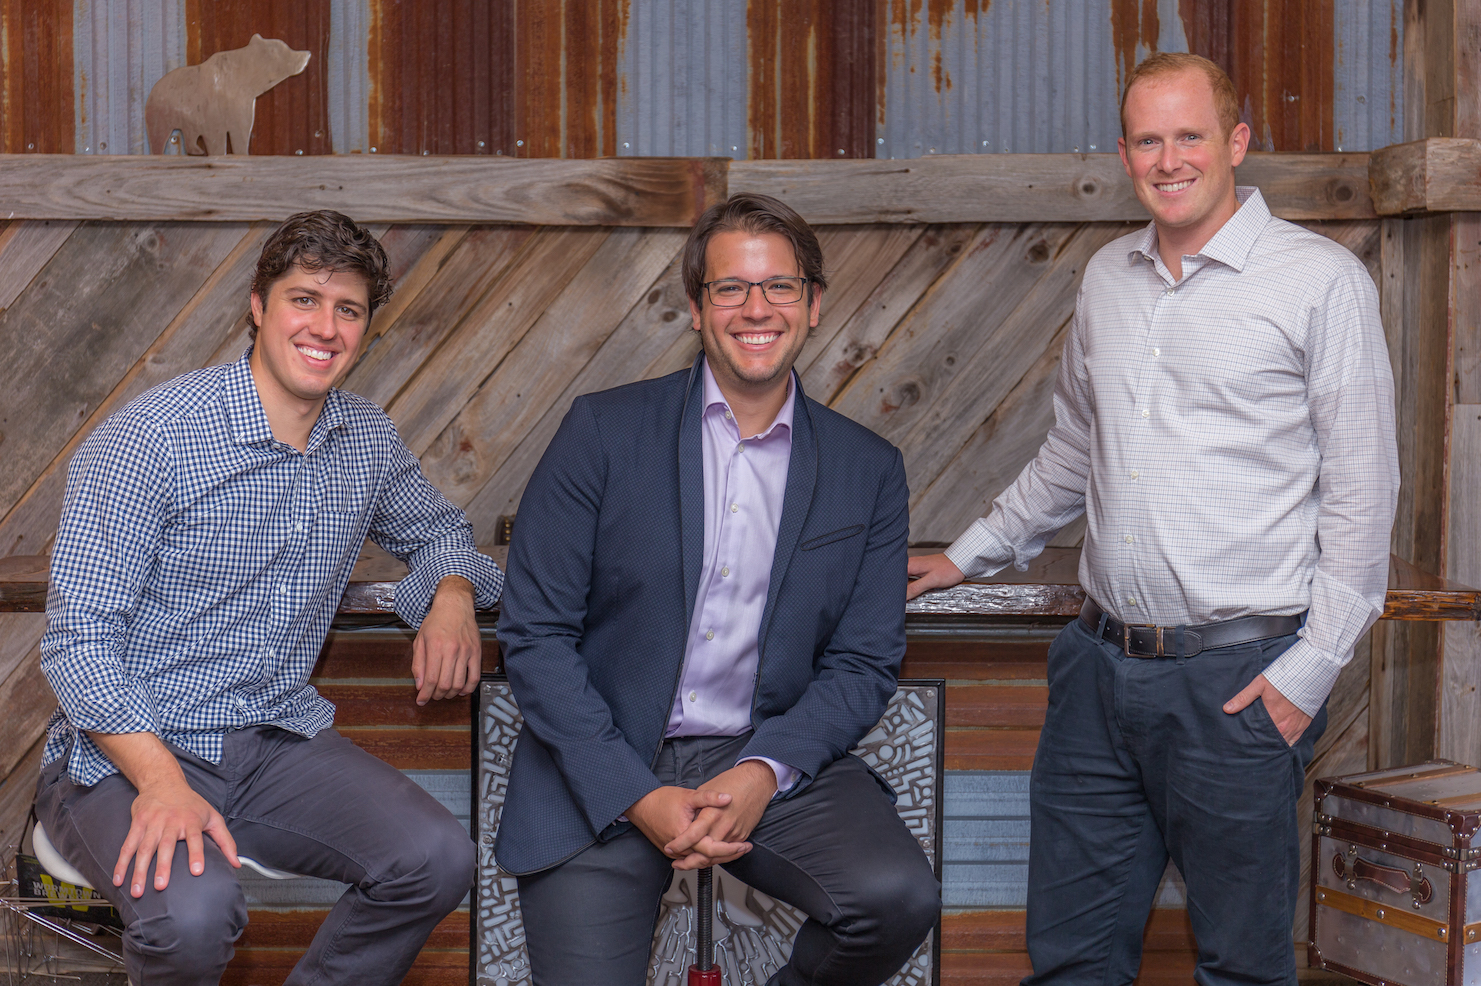 From left, Drizly chief operating officer Cory Rellas; co-founder and CEO Nick Rellas; and co-founder Justin Robinson.